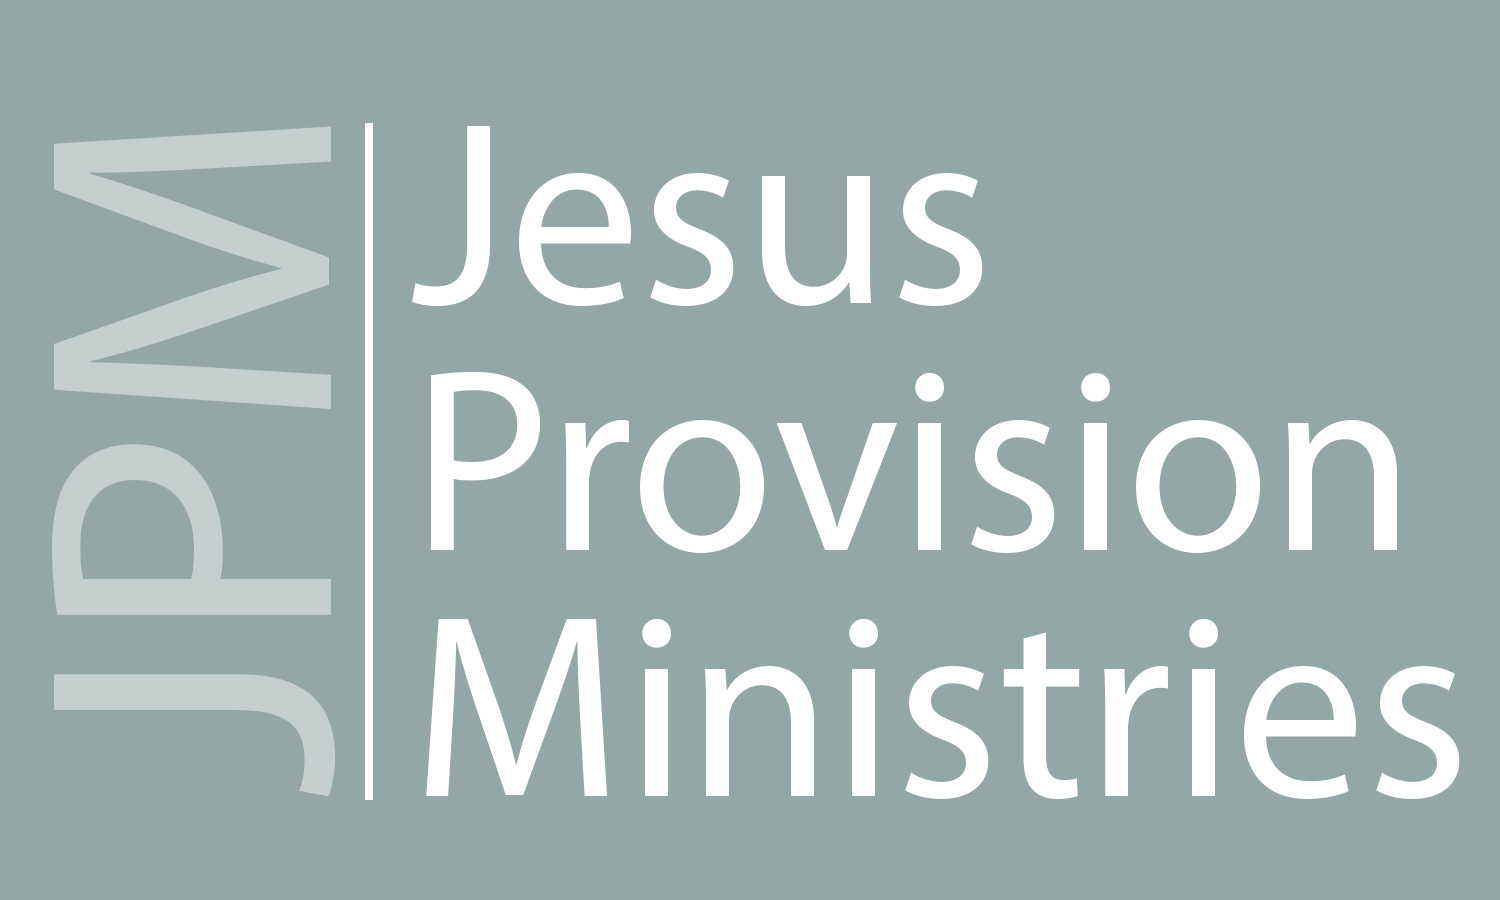 Jesus Provisions Ministries and Care Center